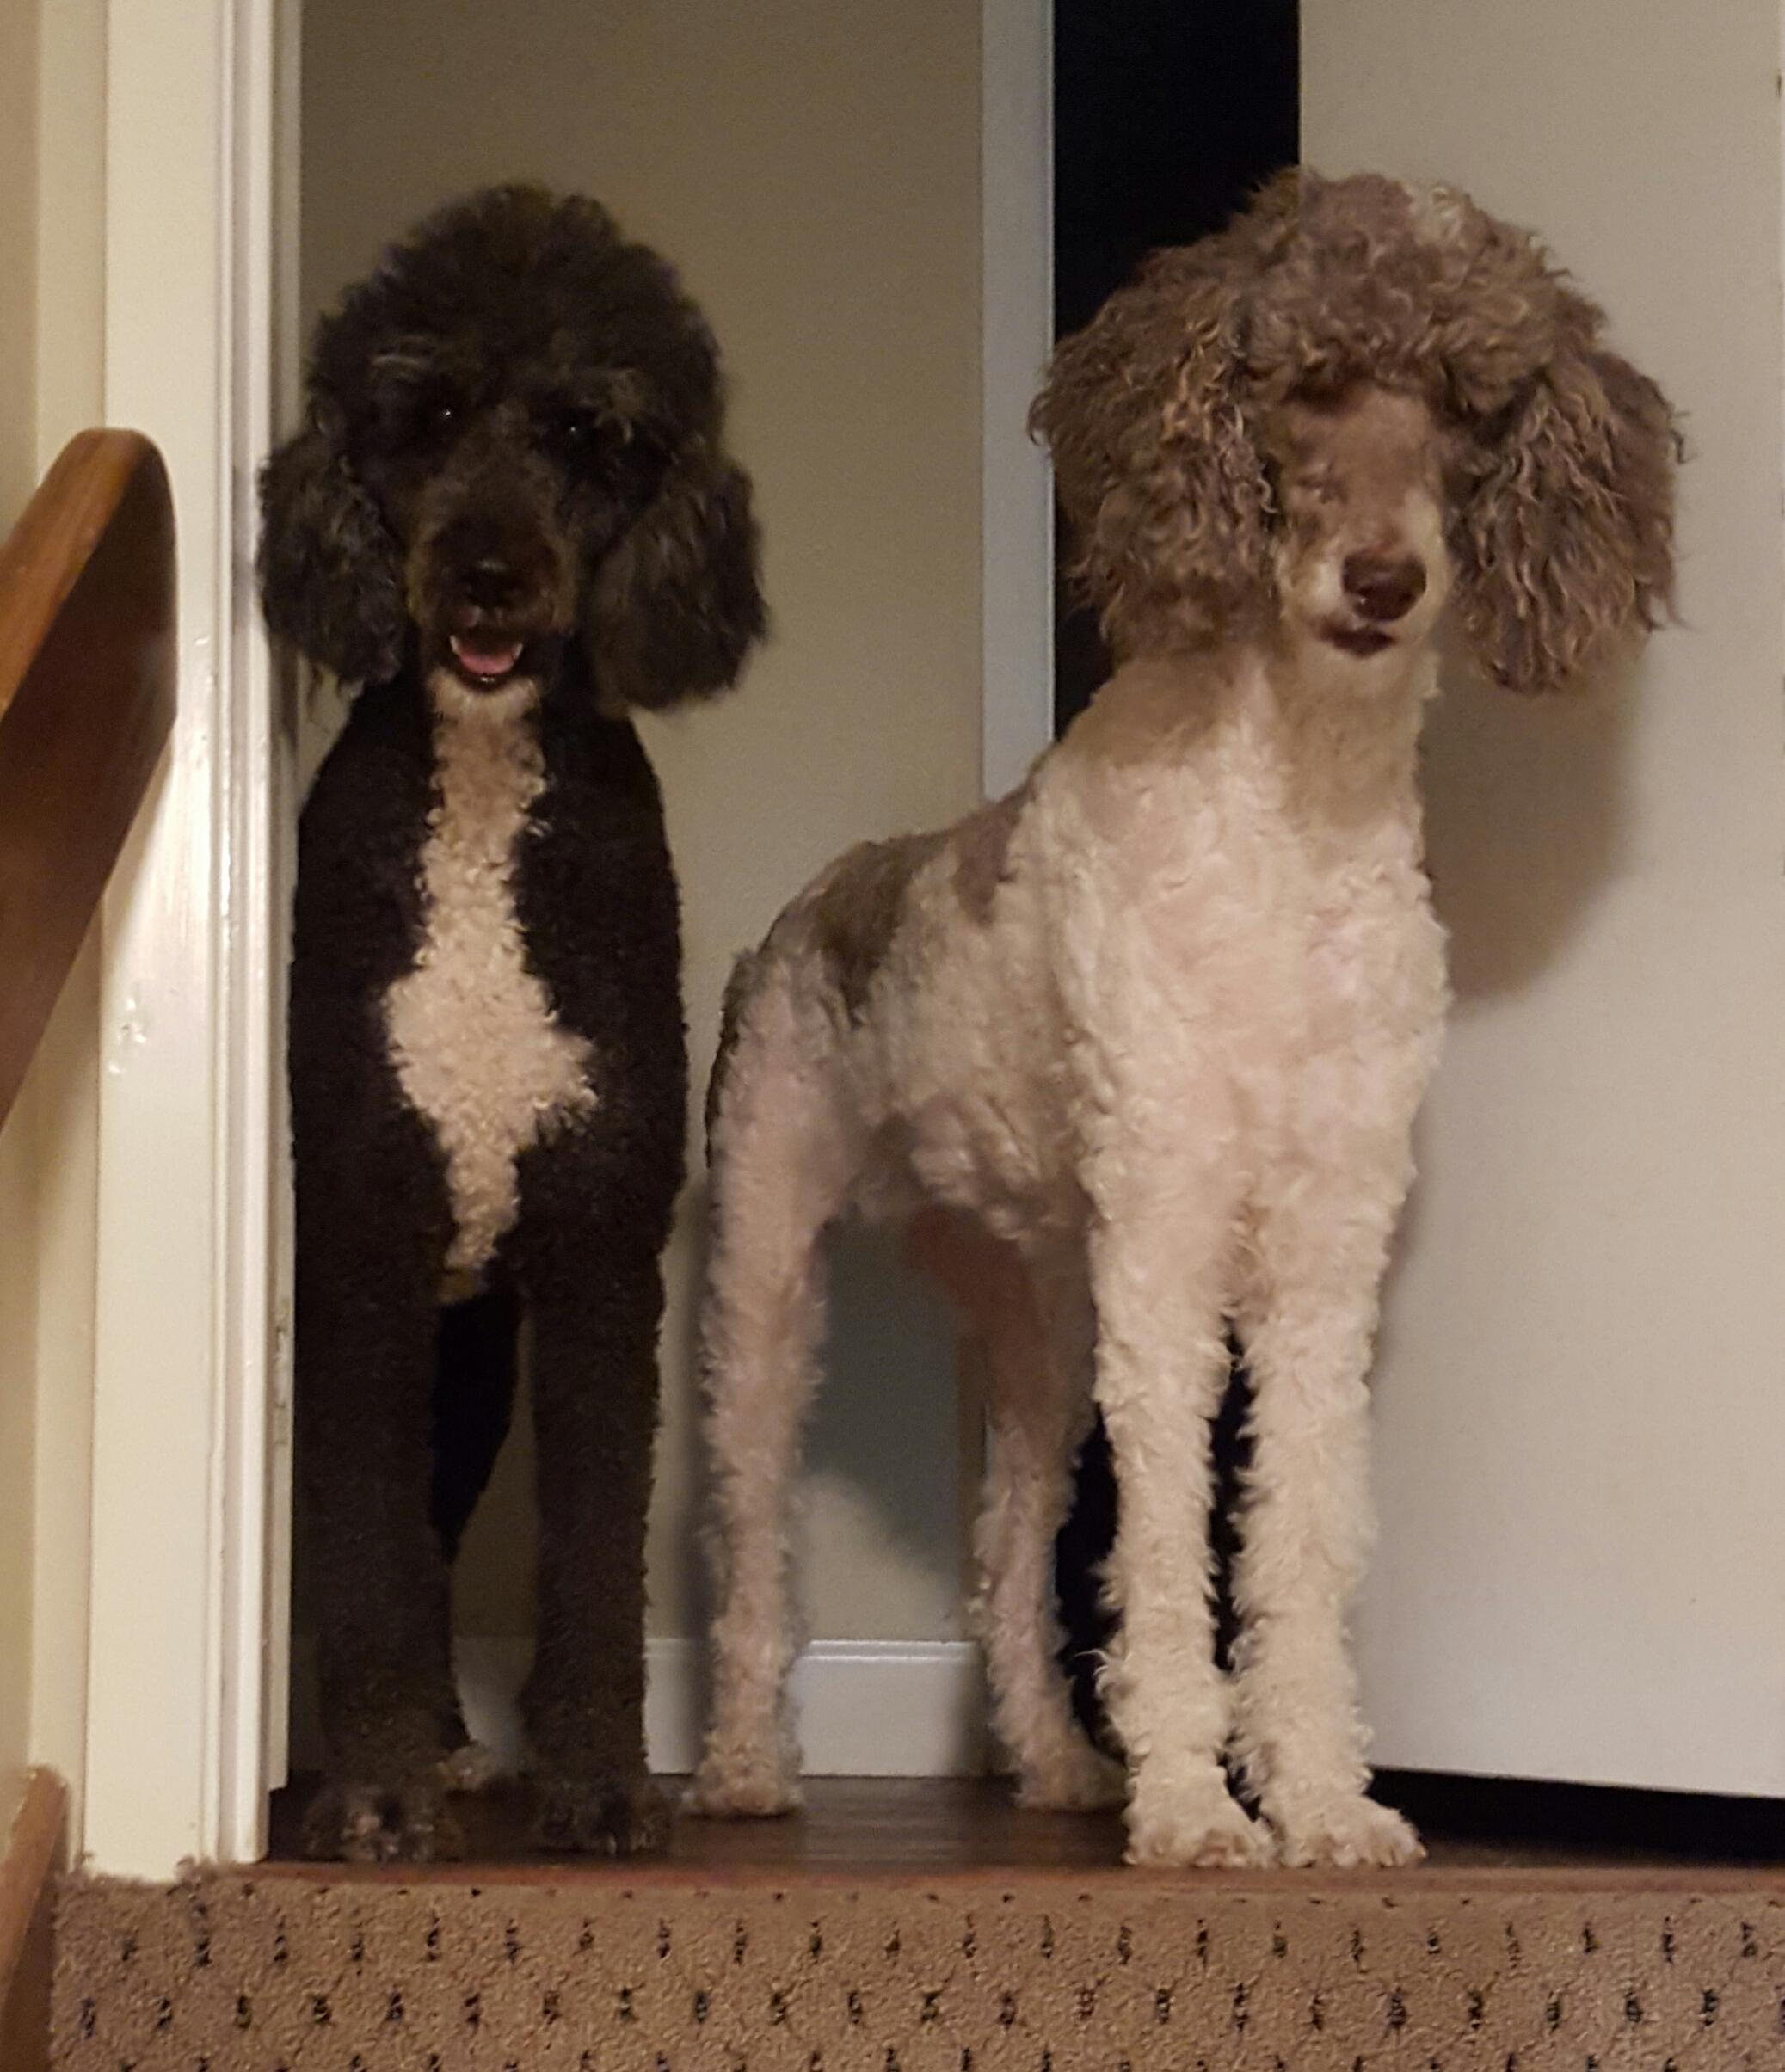 Victory the Poodle and Marley the Doodle